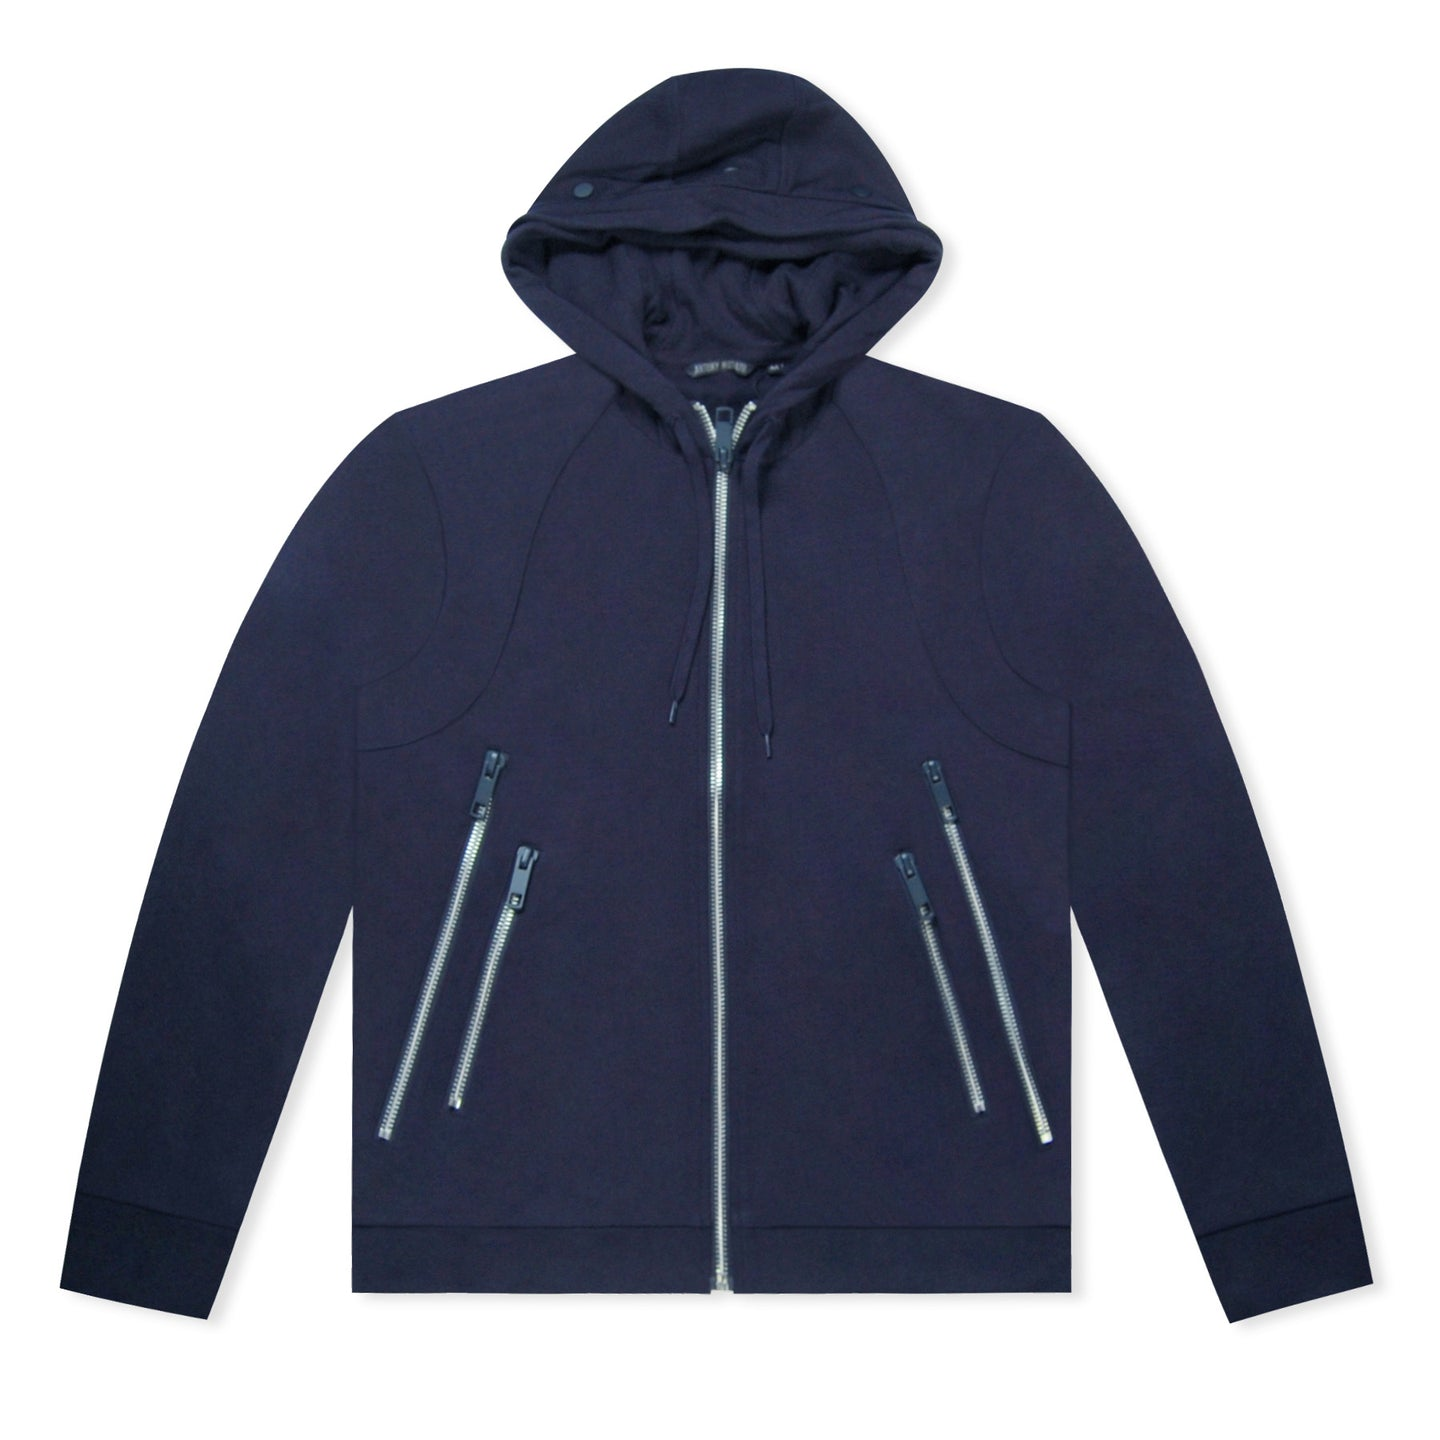 Loud Blue Antony Morato Double Zip Hoody